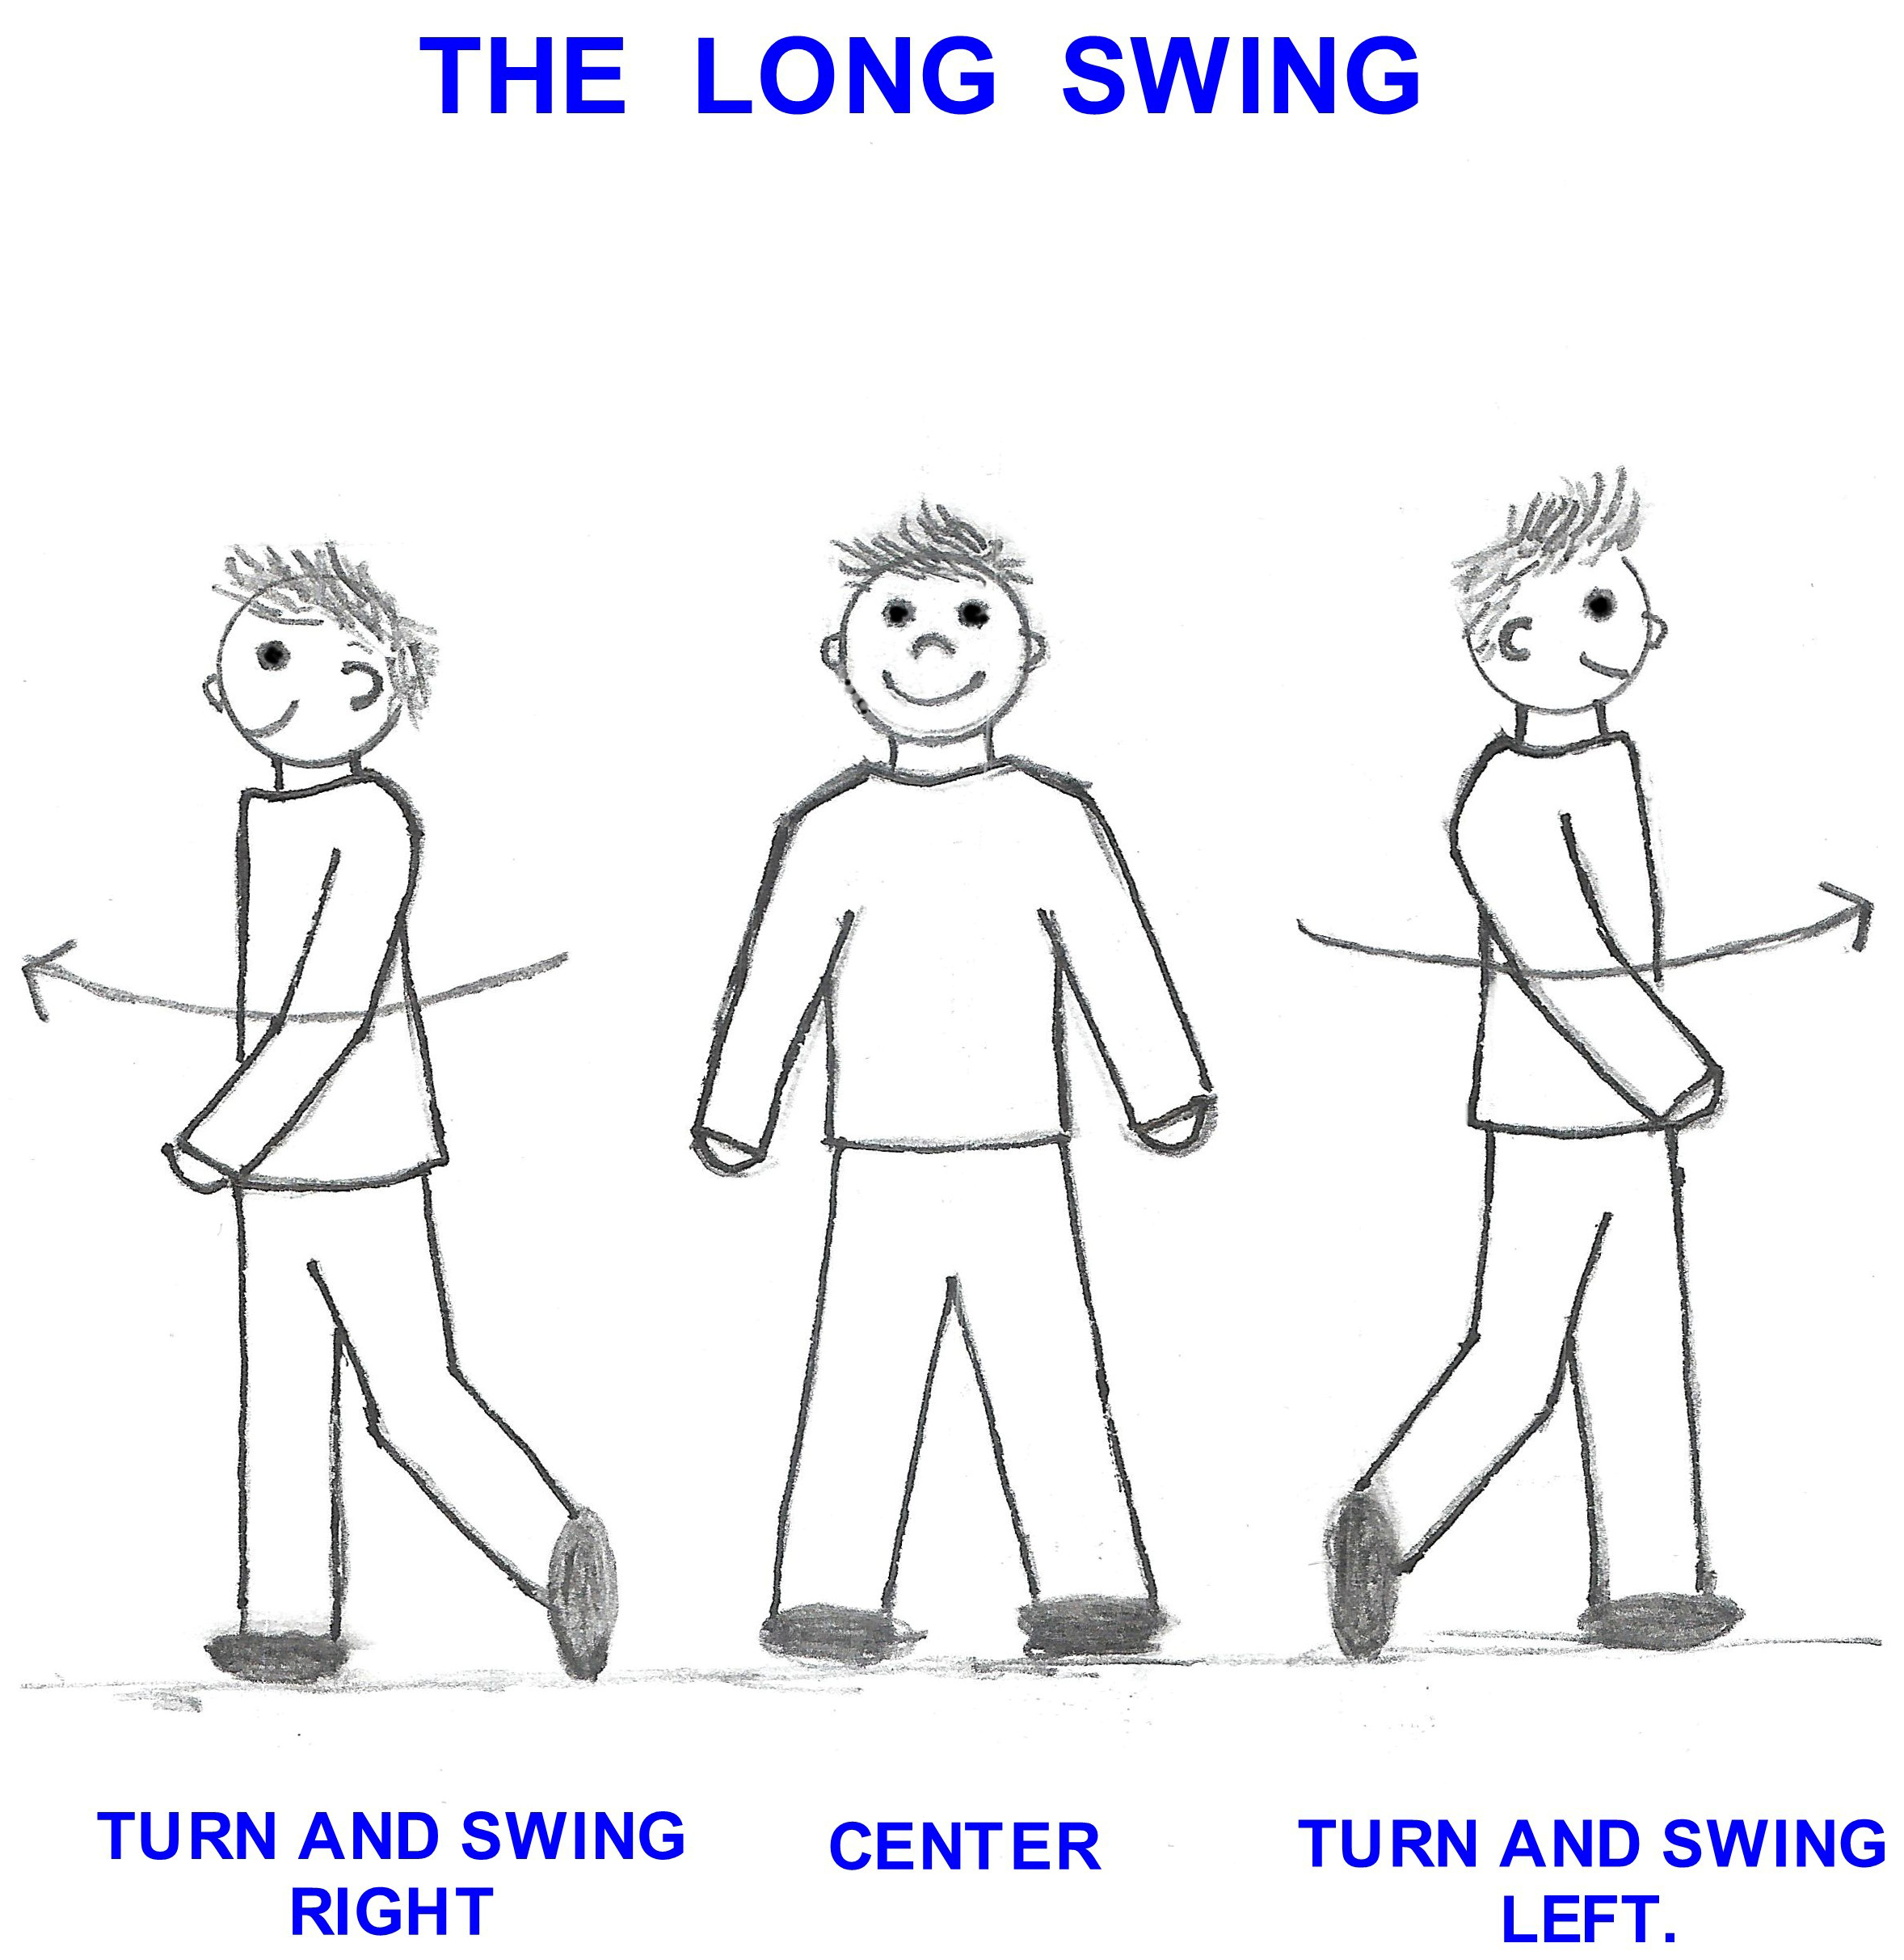 THE LONG SWING